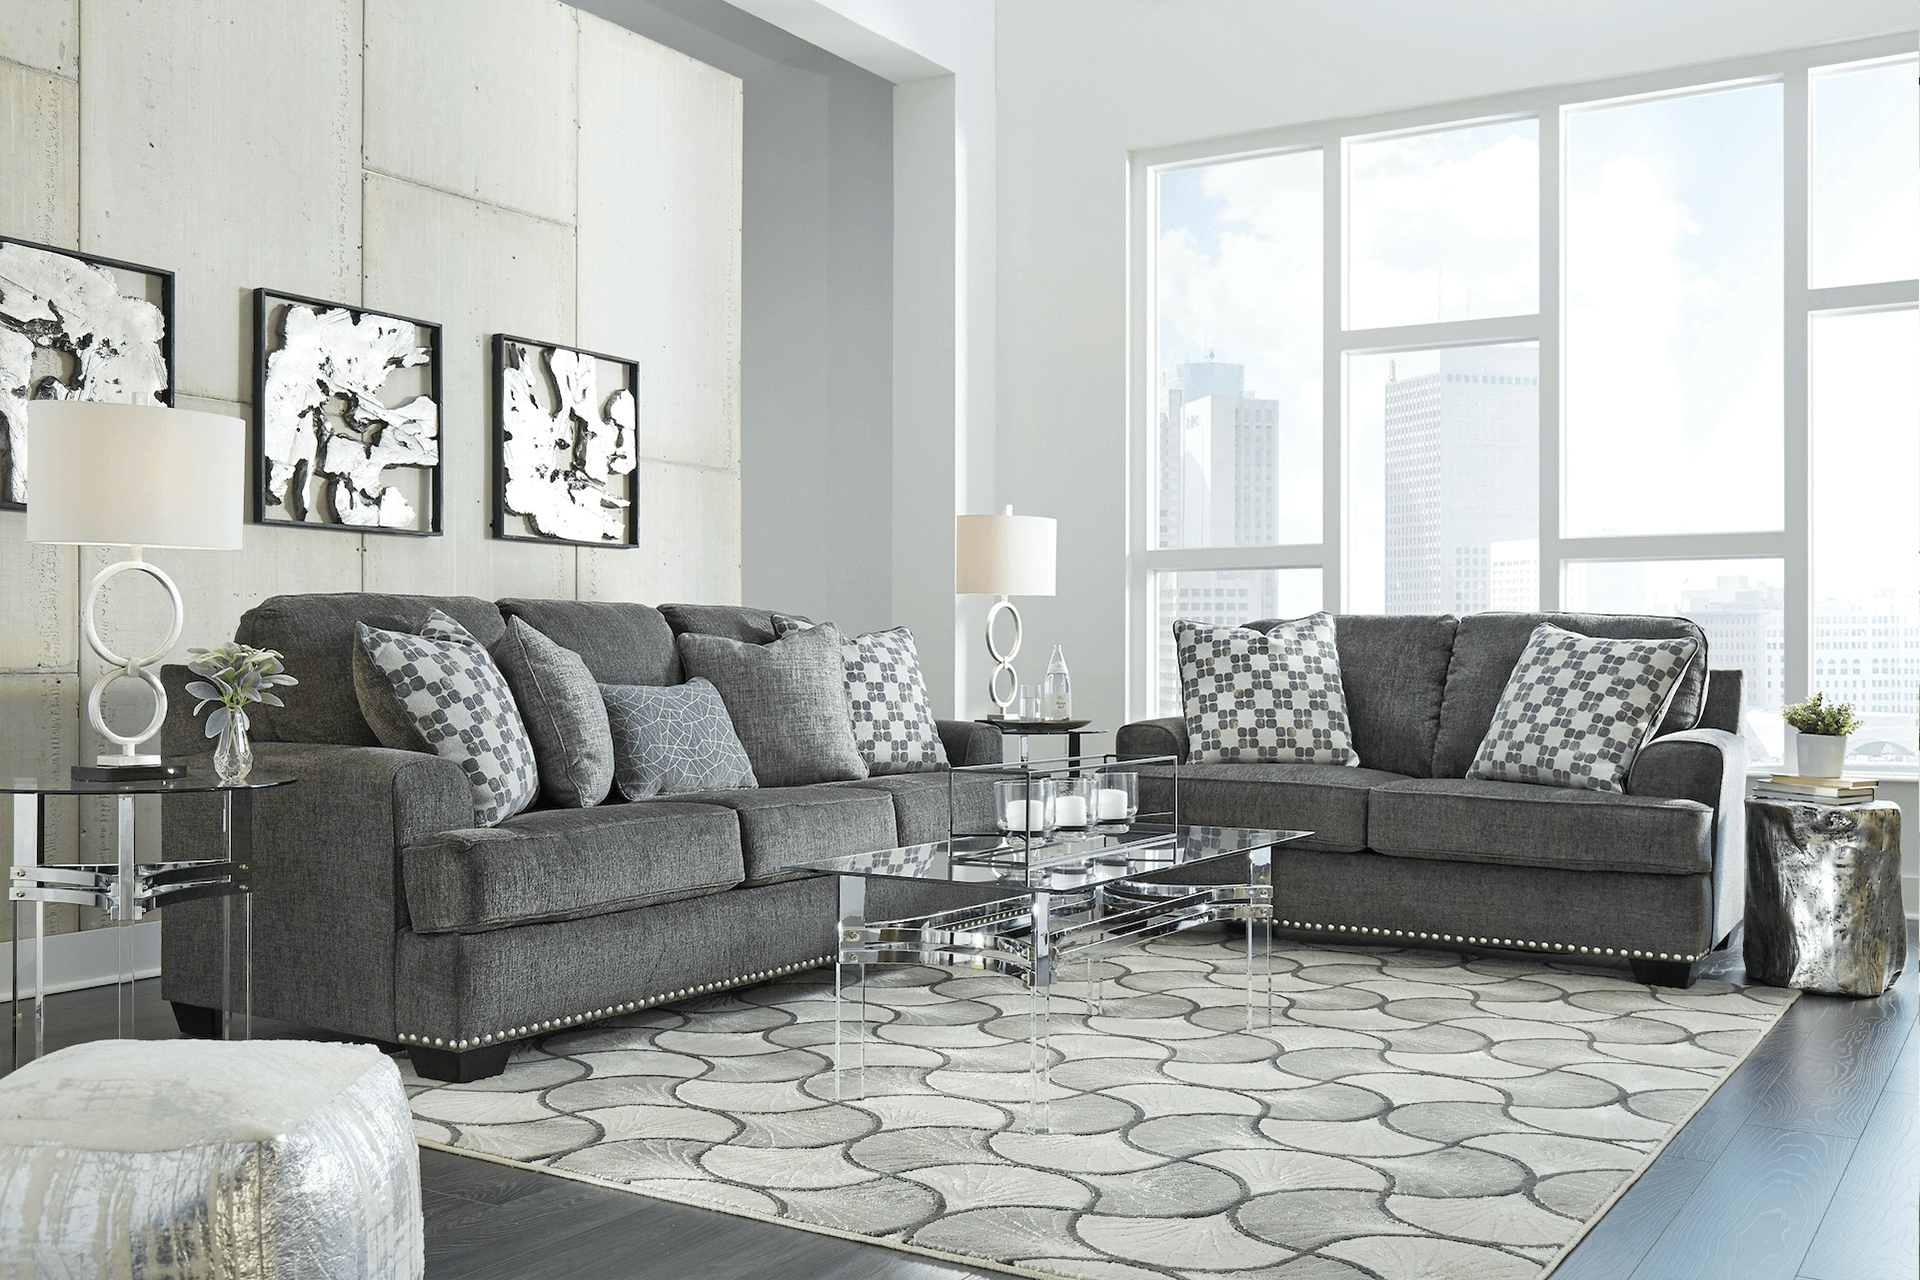 Atlantic_Furniture-Sofa_Sets-95904_w_T420_hi-res